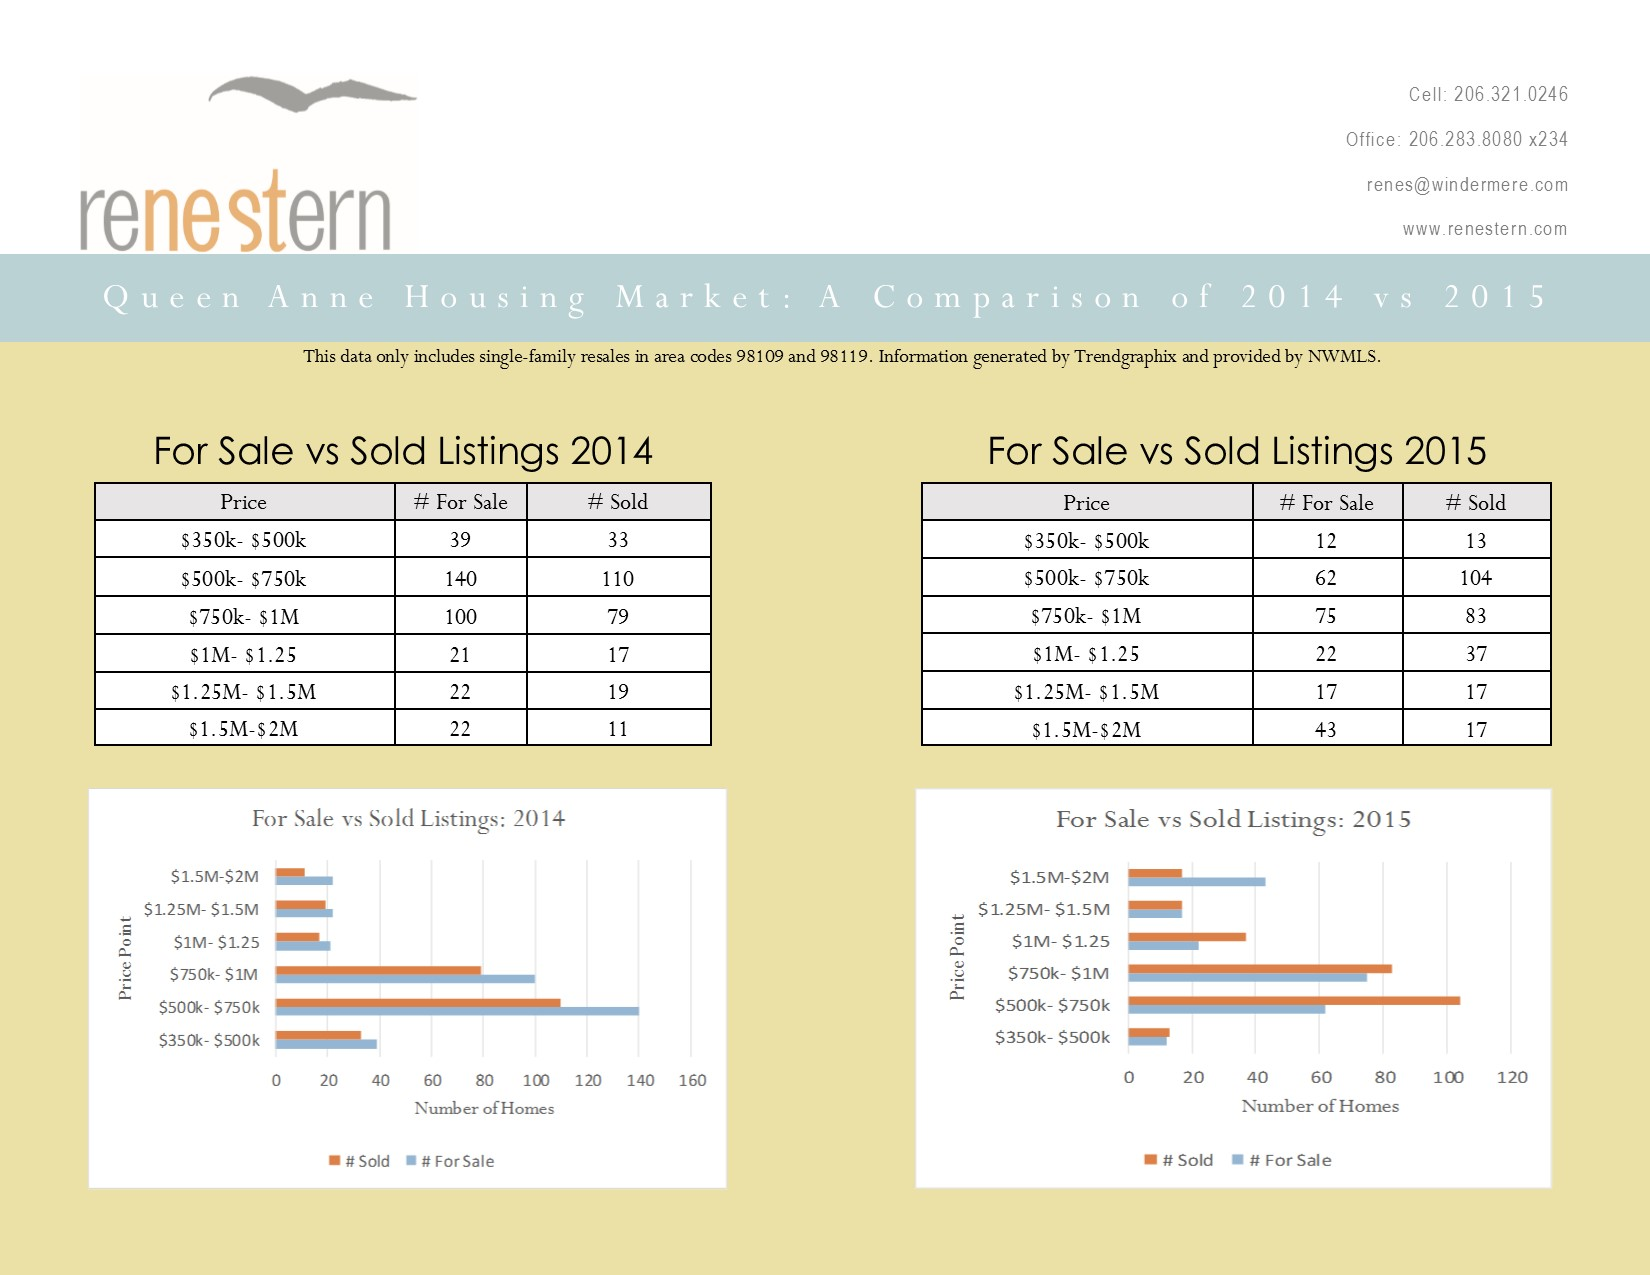 Queen Anne Housing Market Comparison